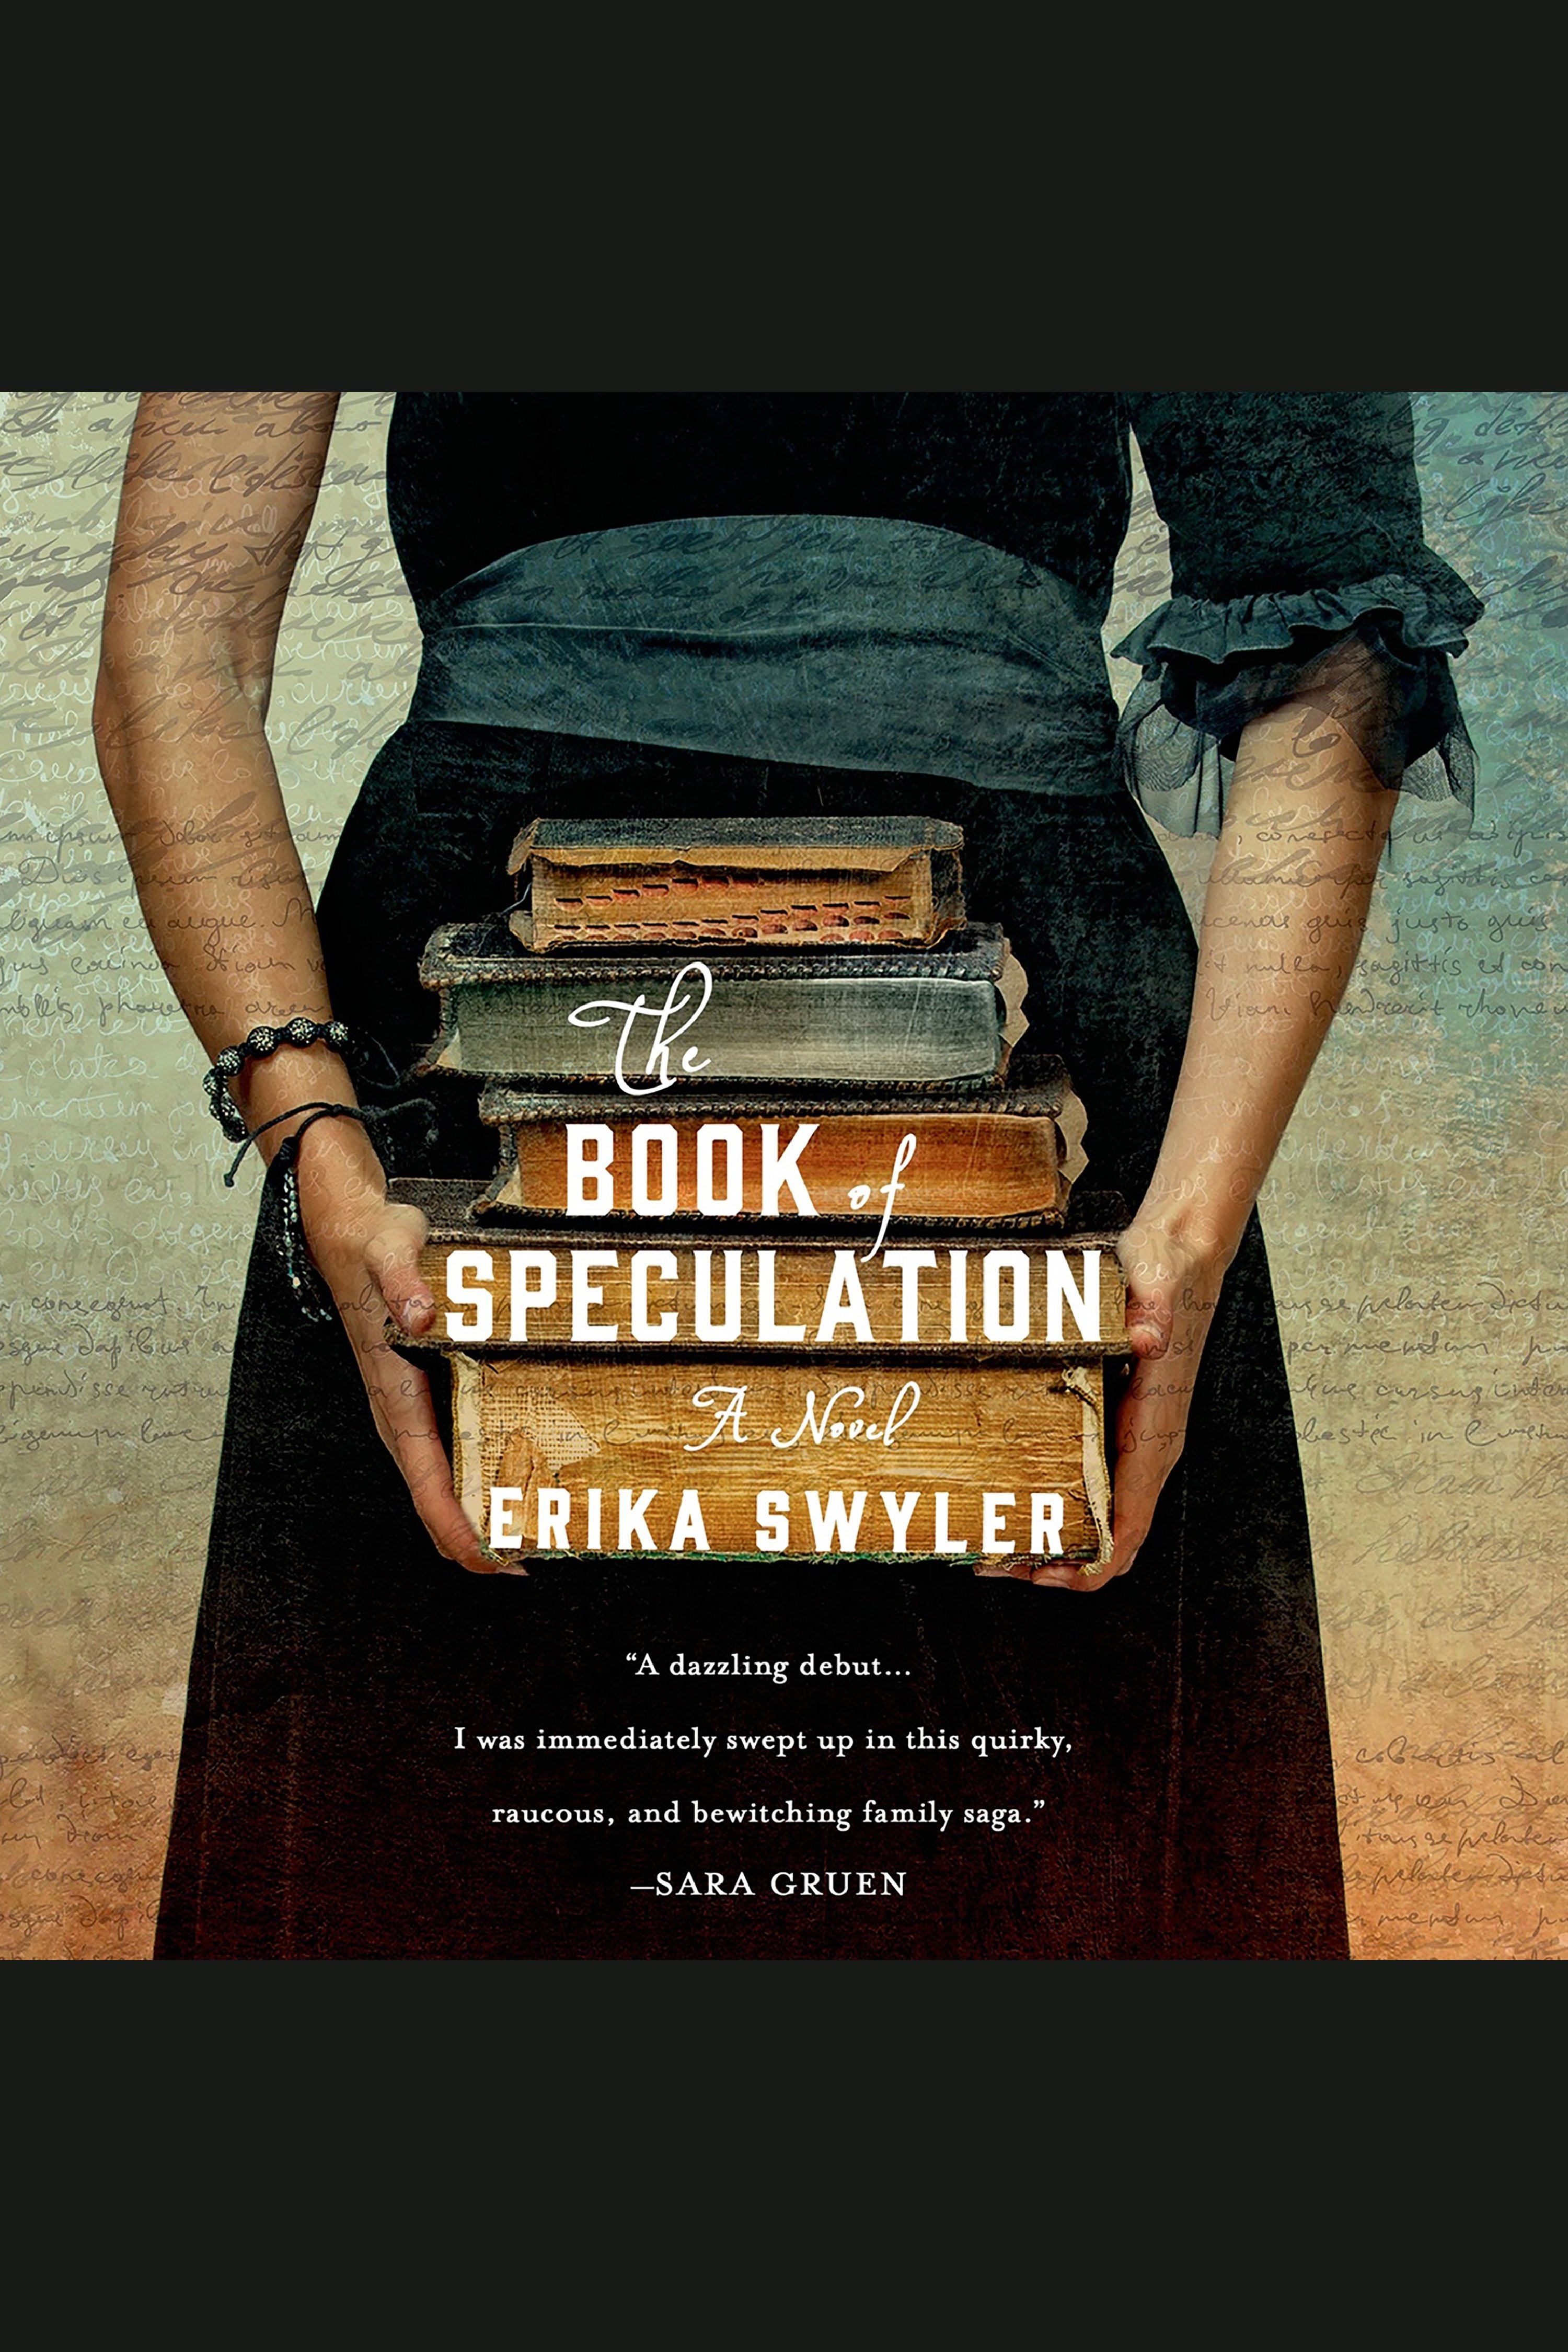 The book of speculation cover image